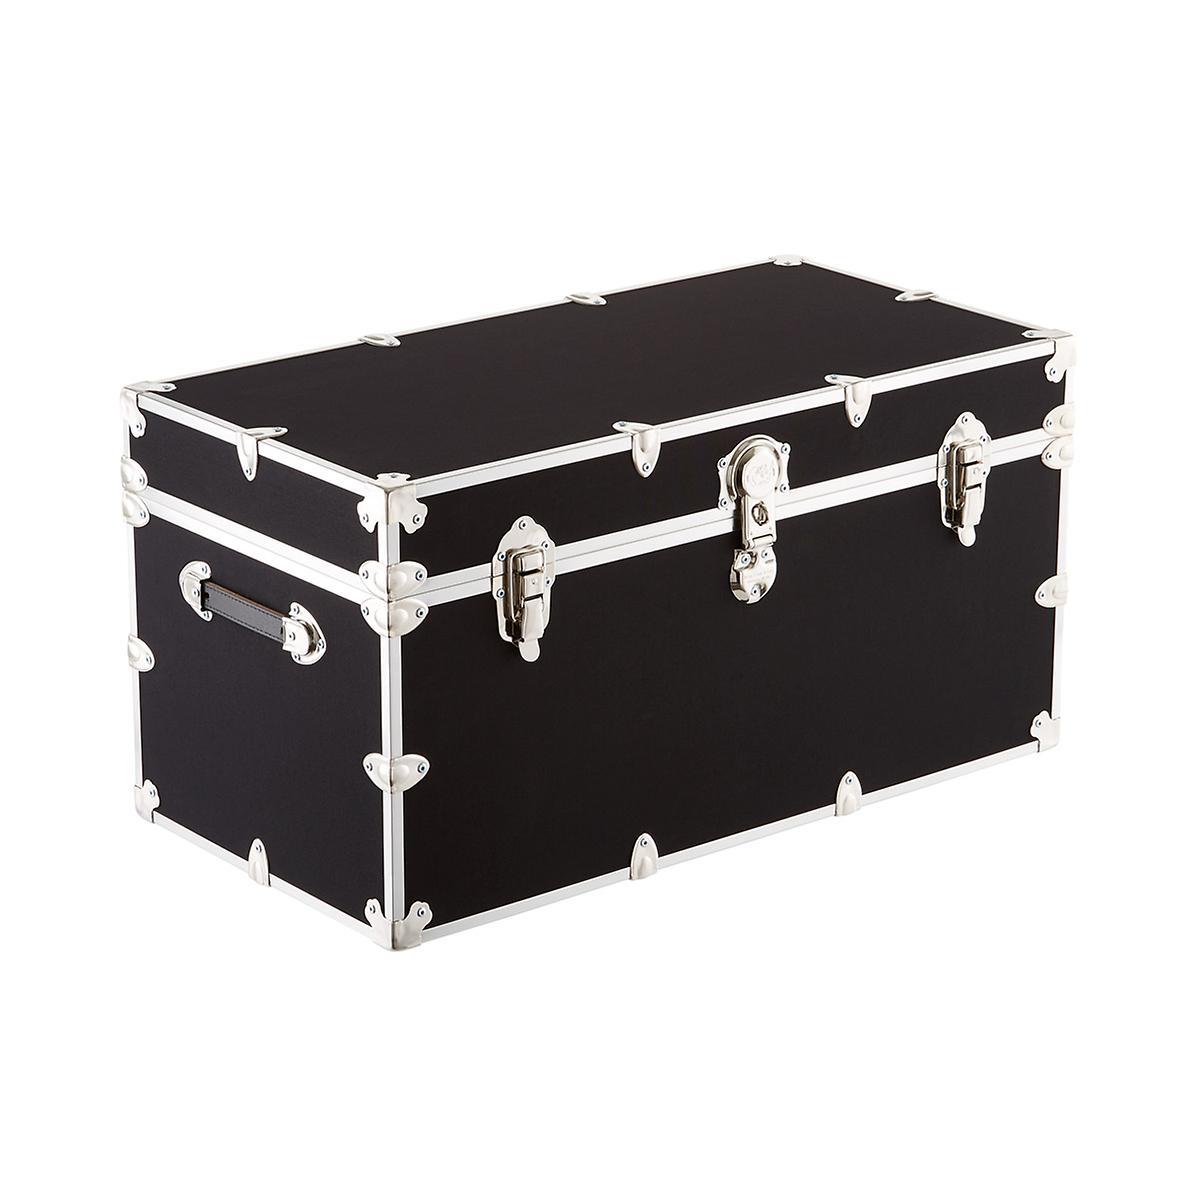 Rhino Deluxe Locking Rolling Storage Trunk